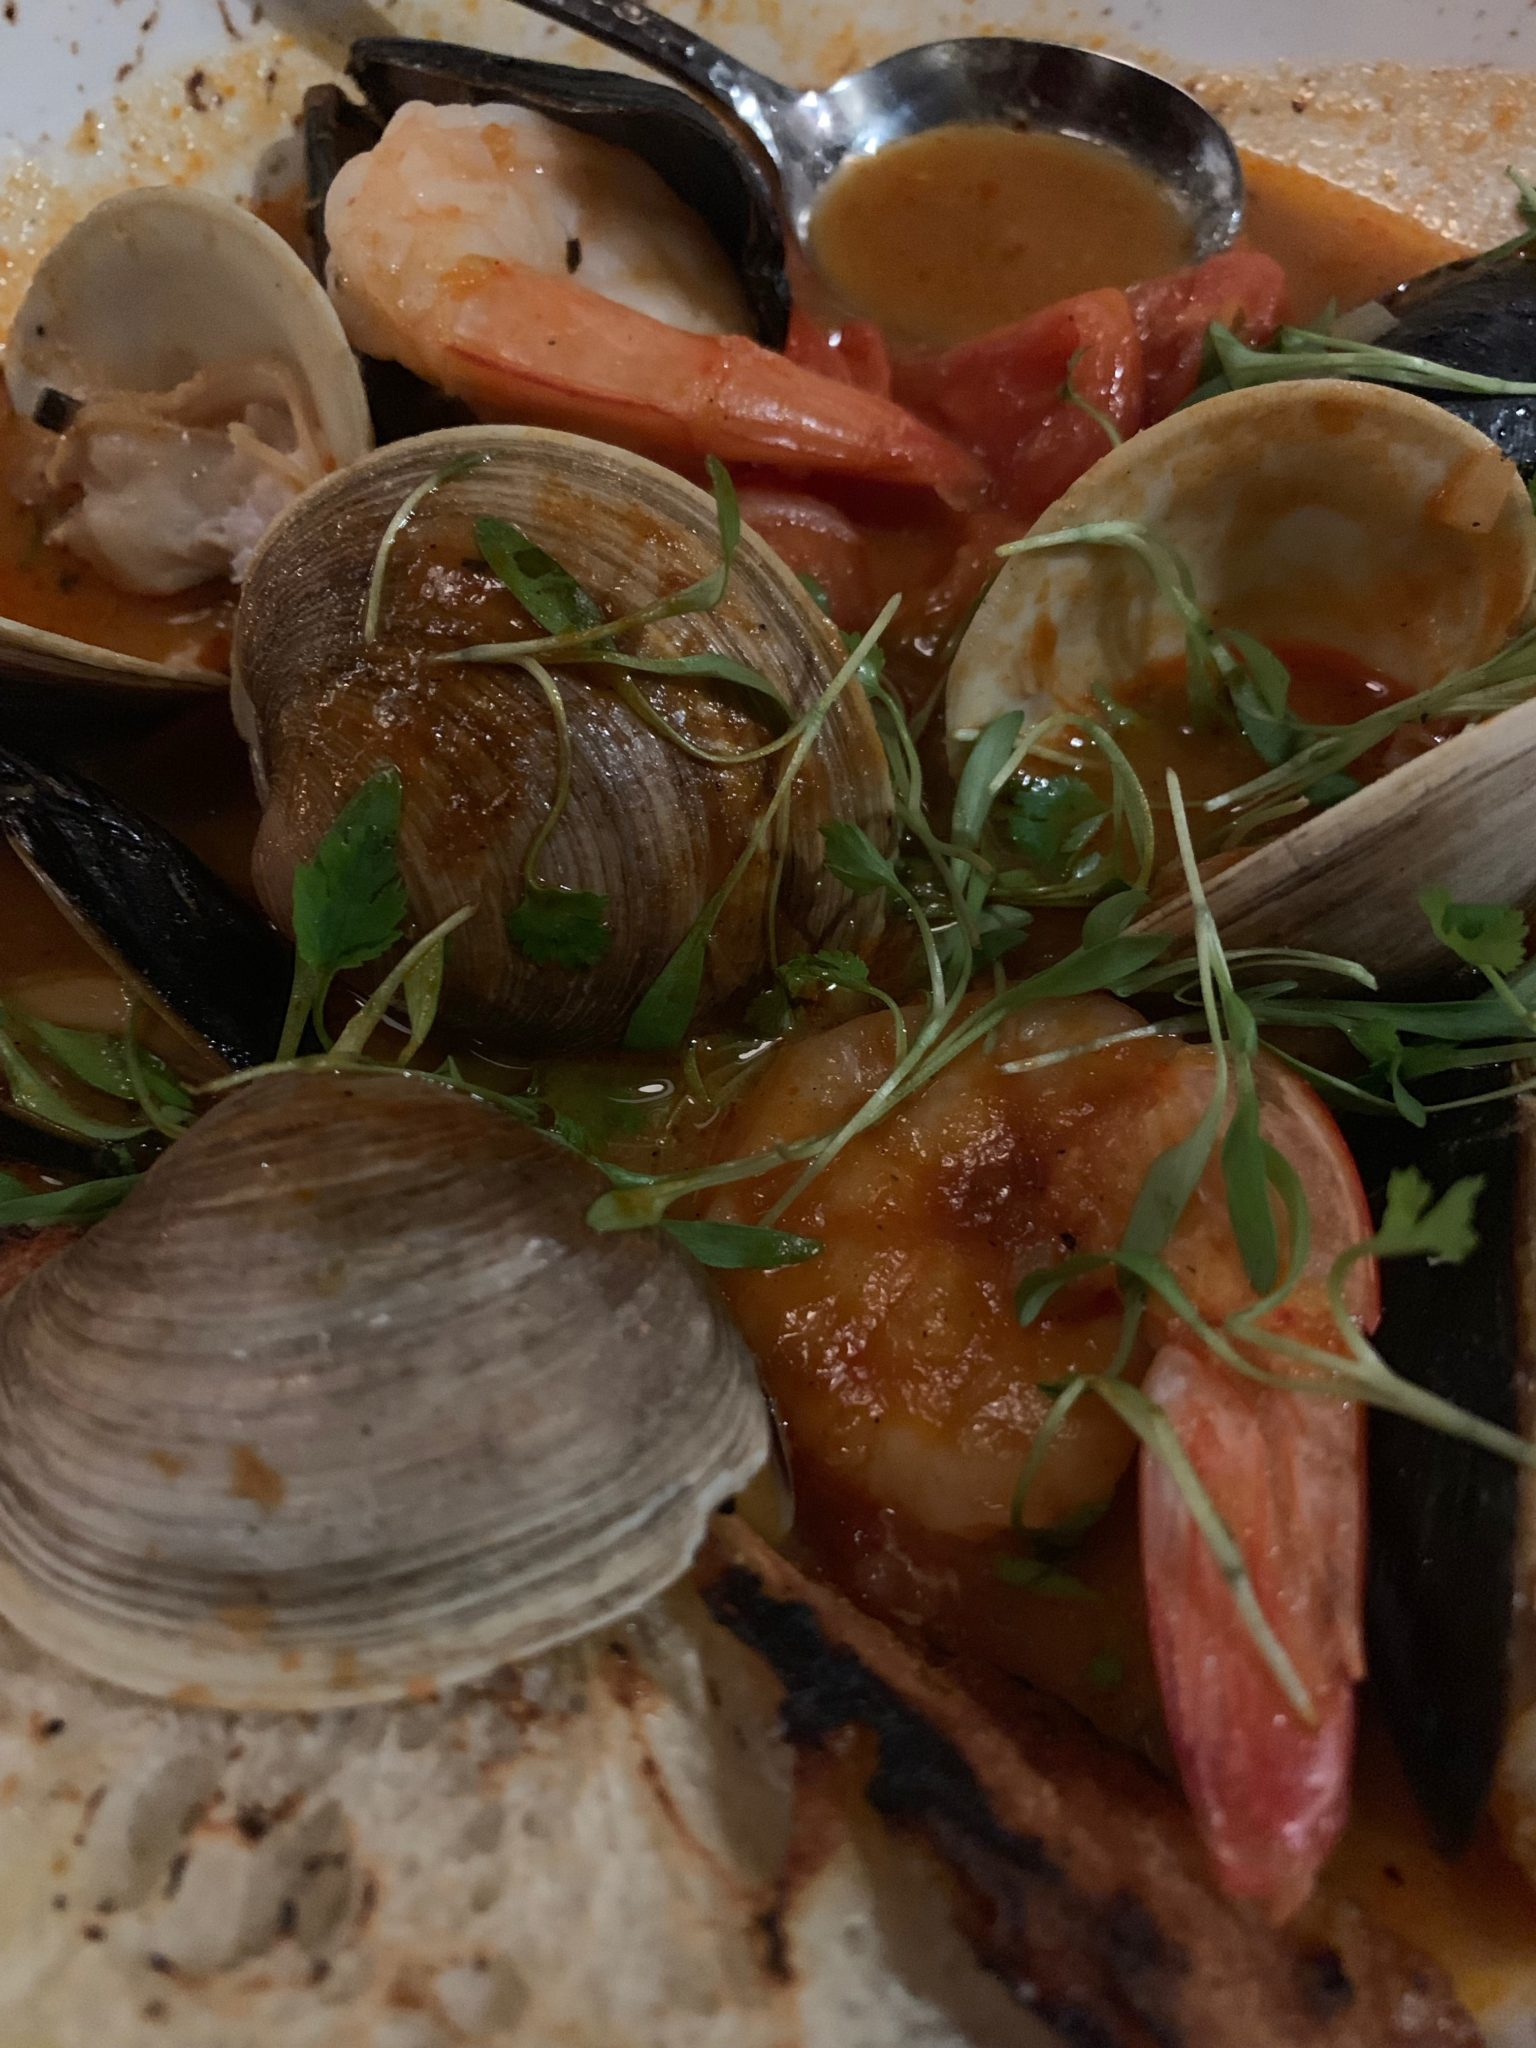 Shrimps, clams and seafood broth